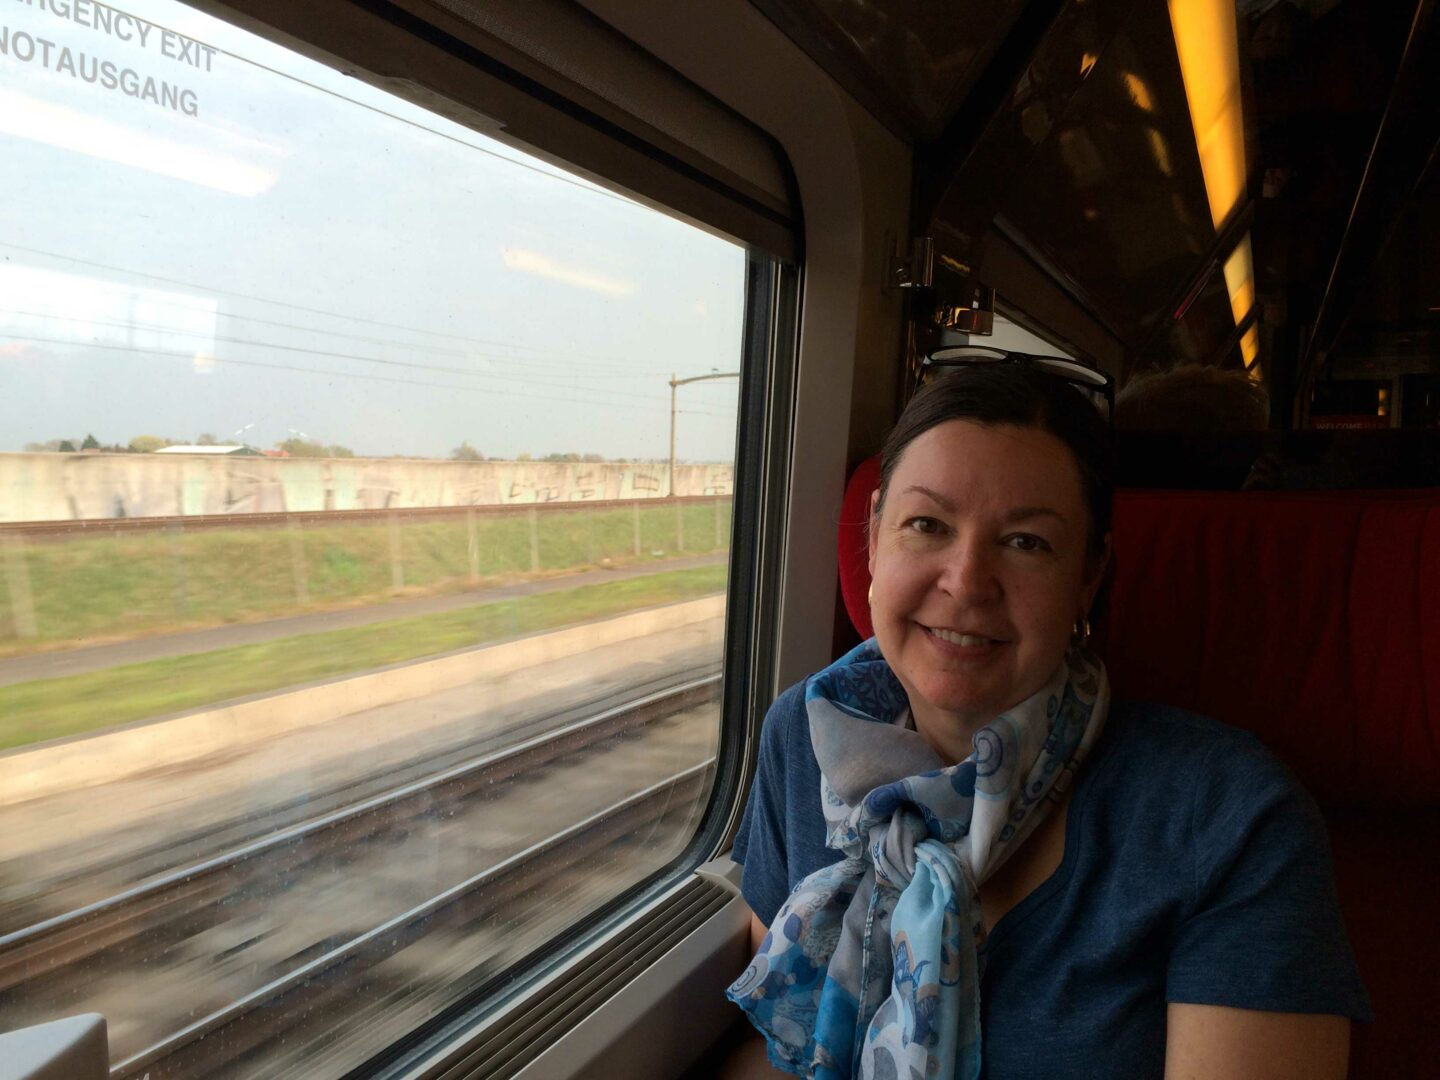 On the train from Paris to Amsterdam.